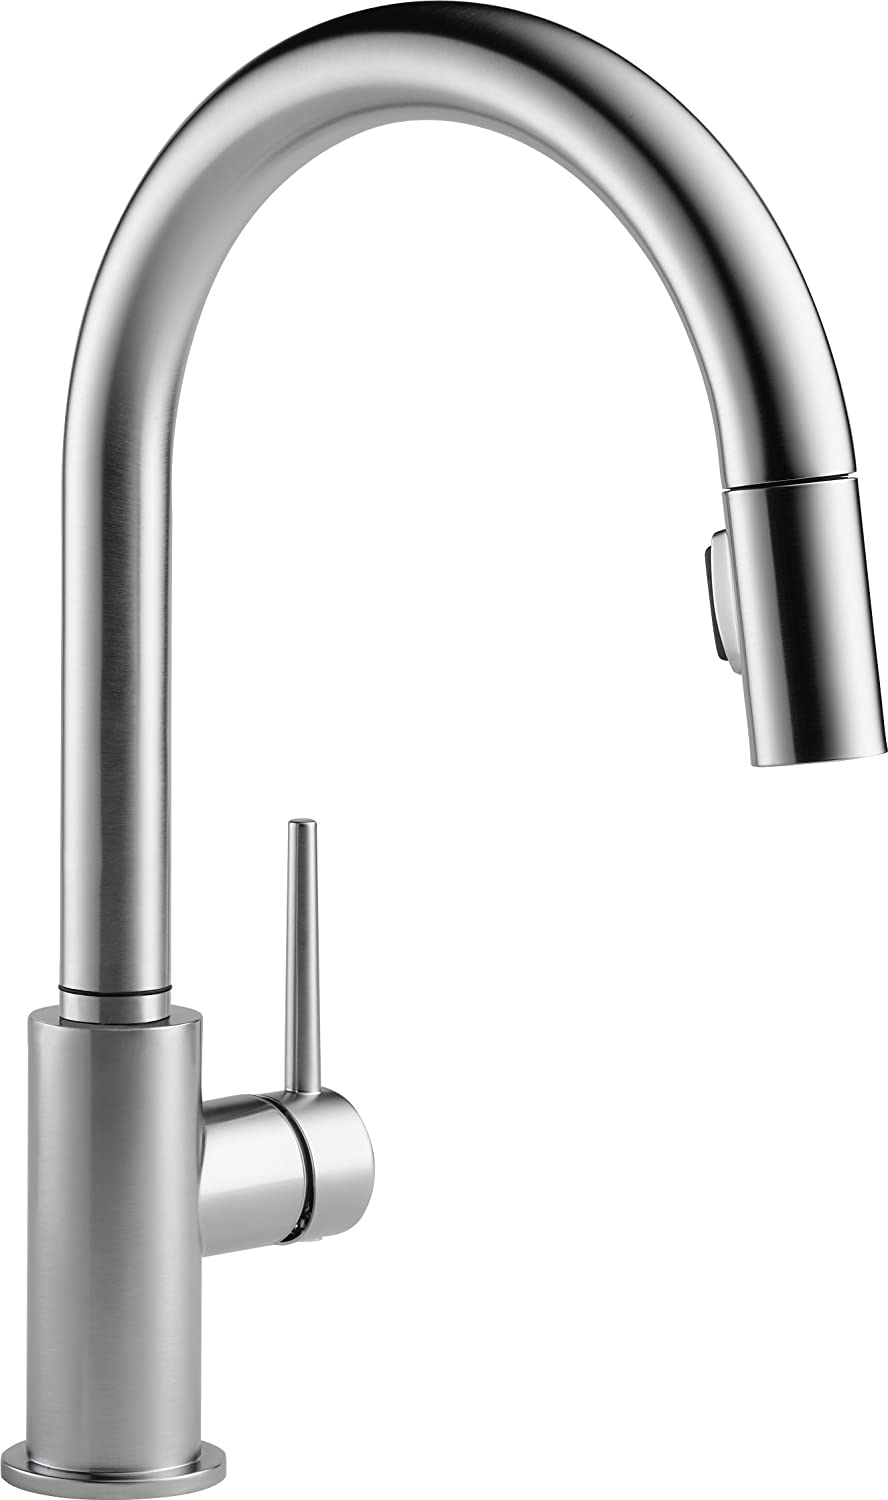 kitchen faucet for size medium sales sale bathroom canada prima at of inspirational faucets taps on furniture awesome kitchenaid